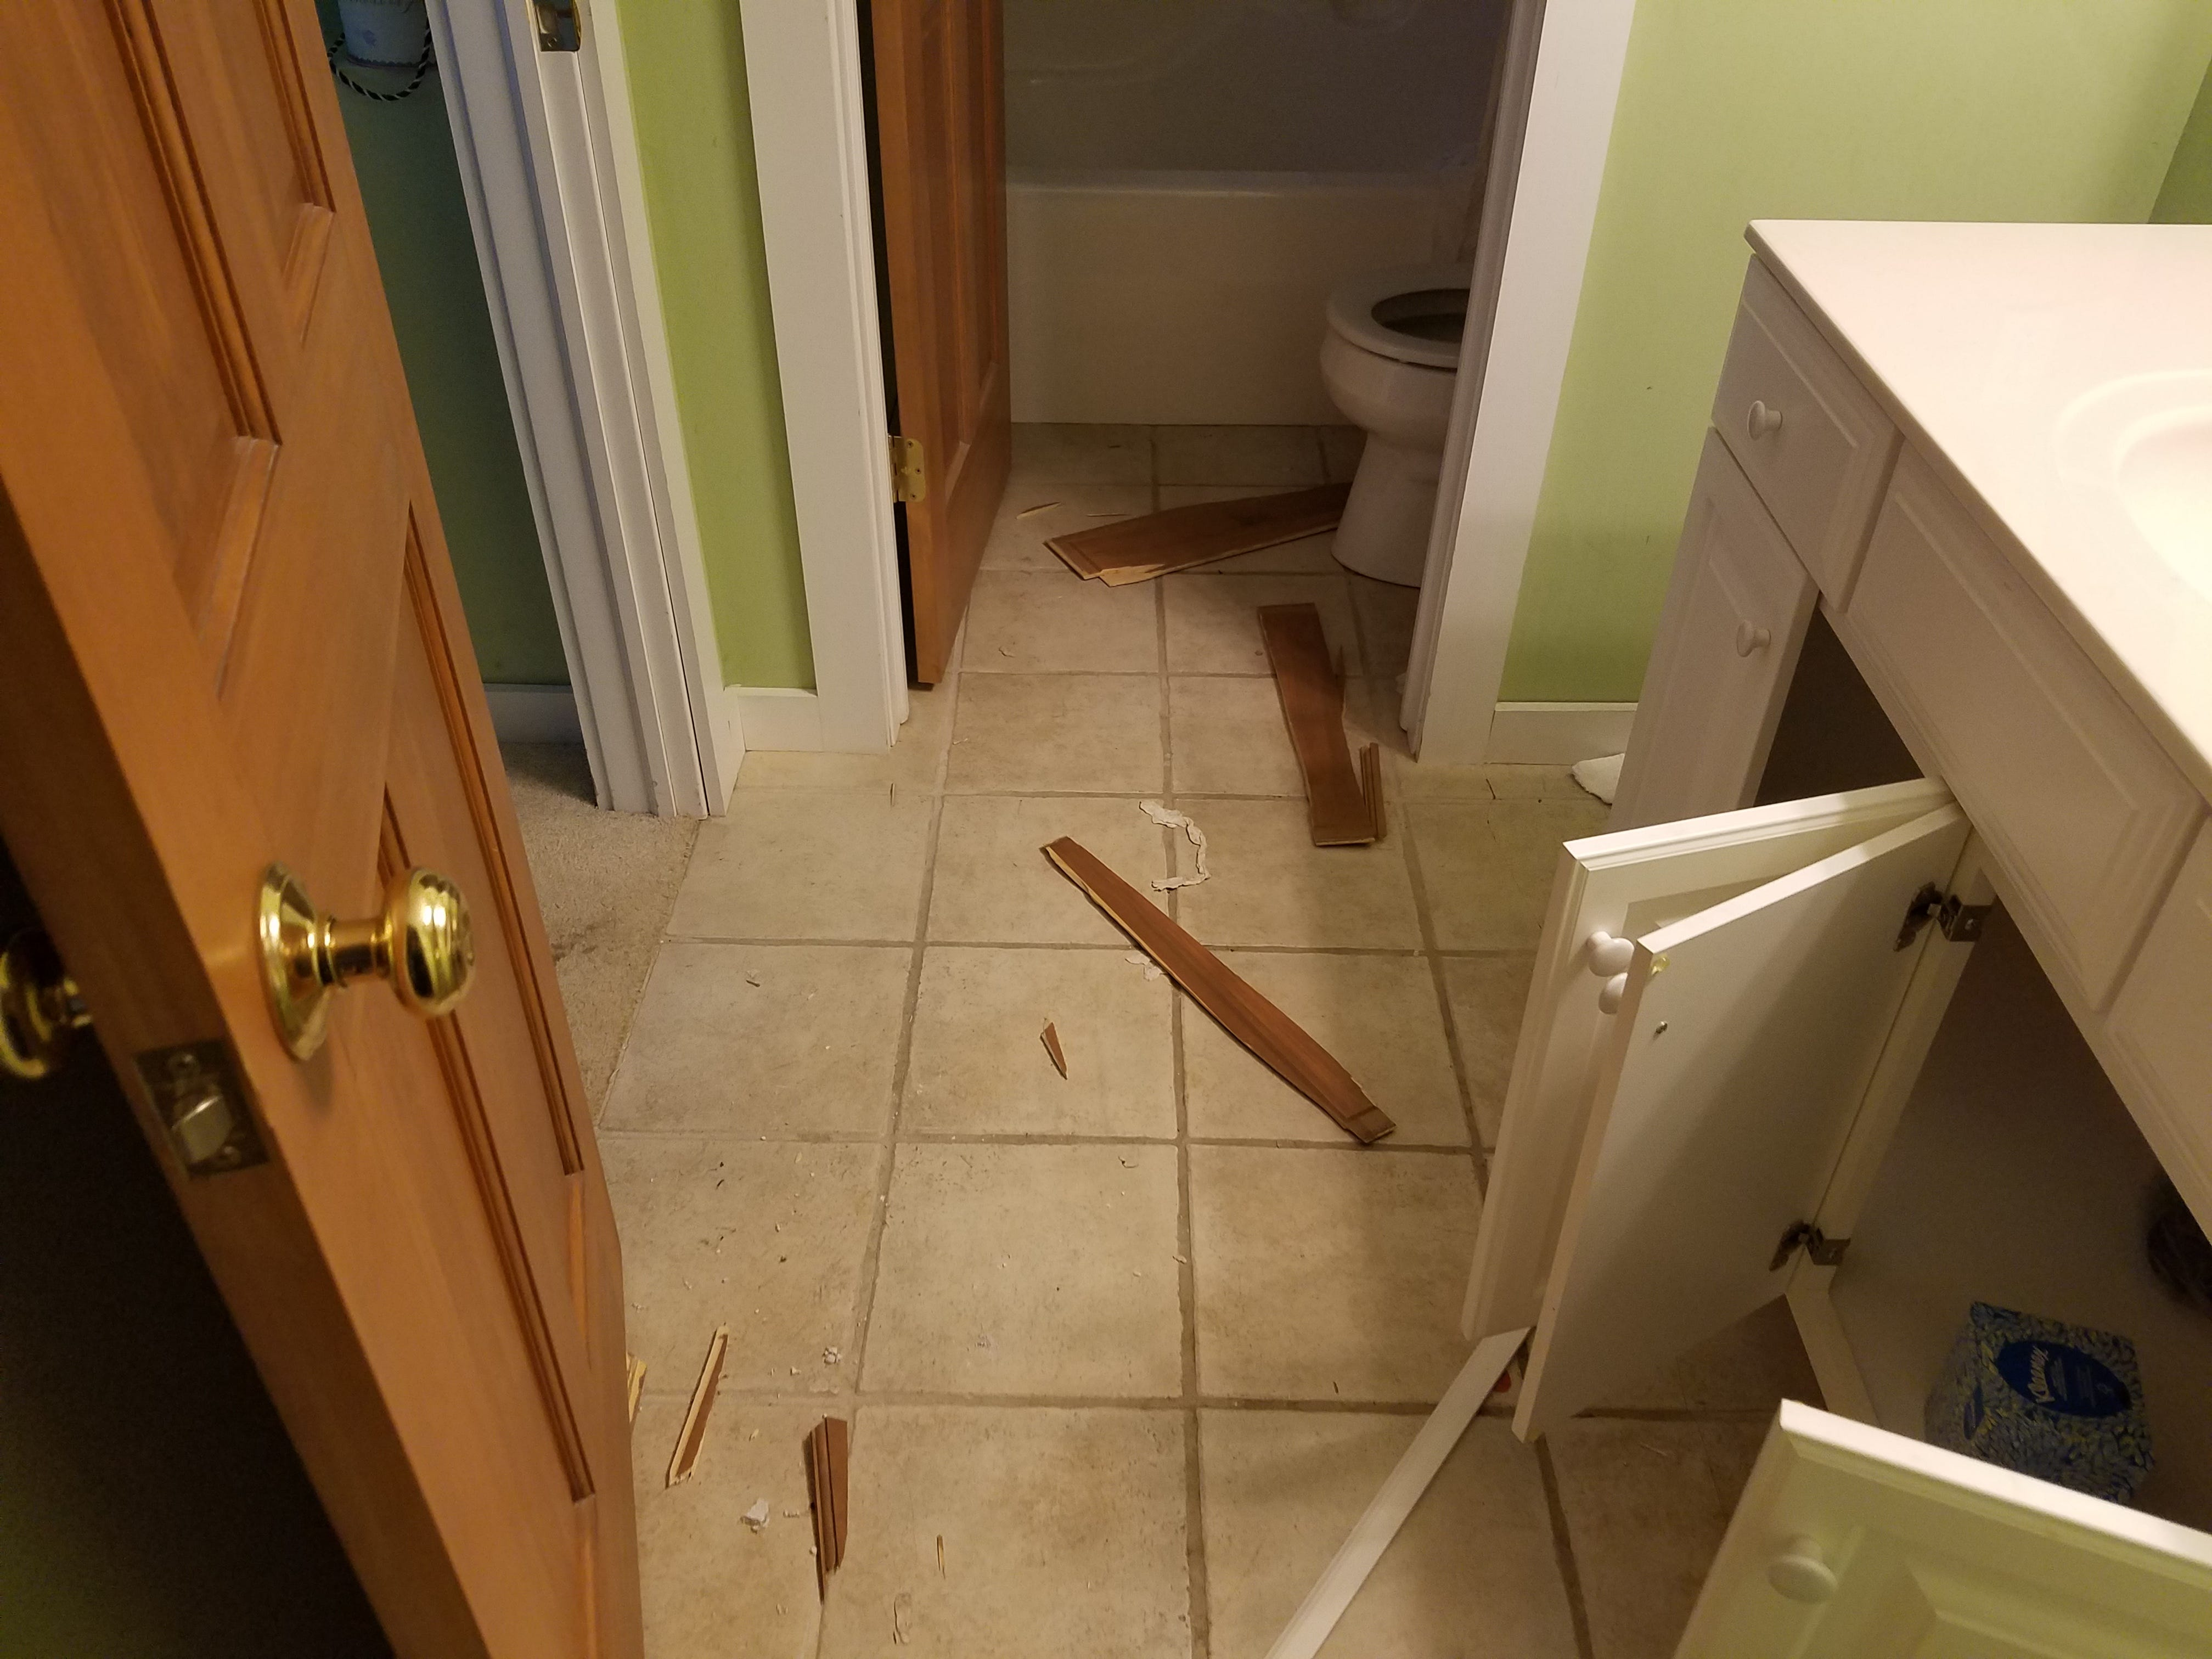 Over the course of one weekend in 2017, the University of Iowa fraternity Sigma Nu caused nearly $108,000 in damage across 28 rental houses in Galena, Illinois.  Photographs of some of the rental properties were provided to the Jo Daviess County Sheriff's Department at the time. They give a small glimpse into what the damage looked like.